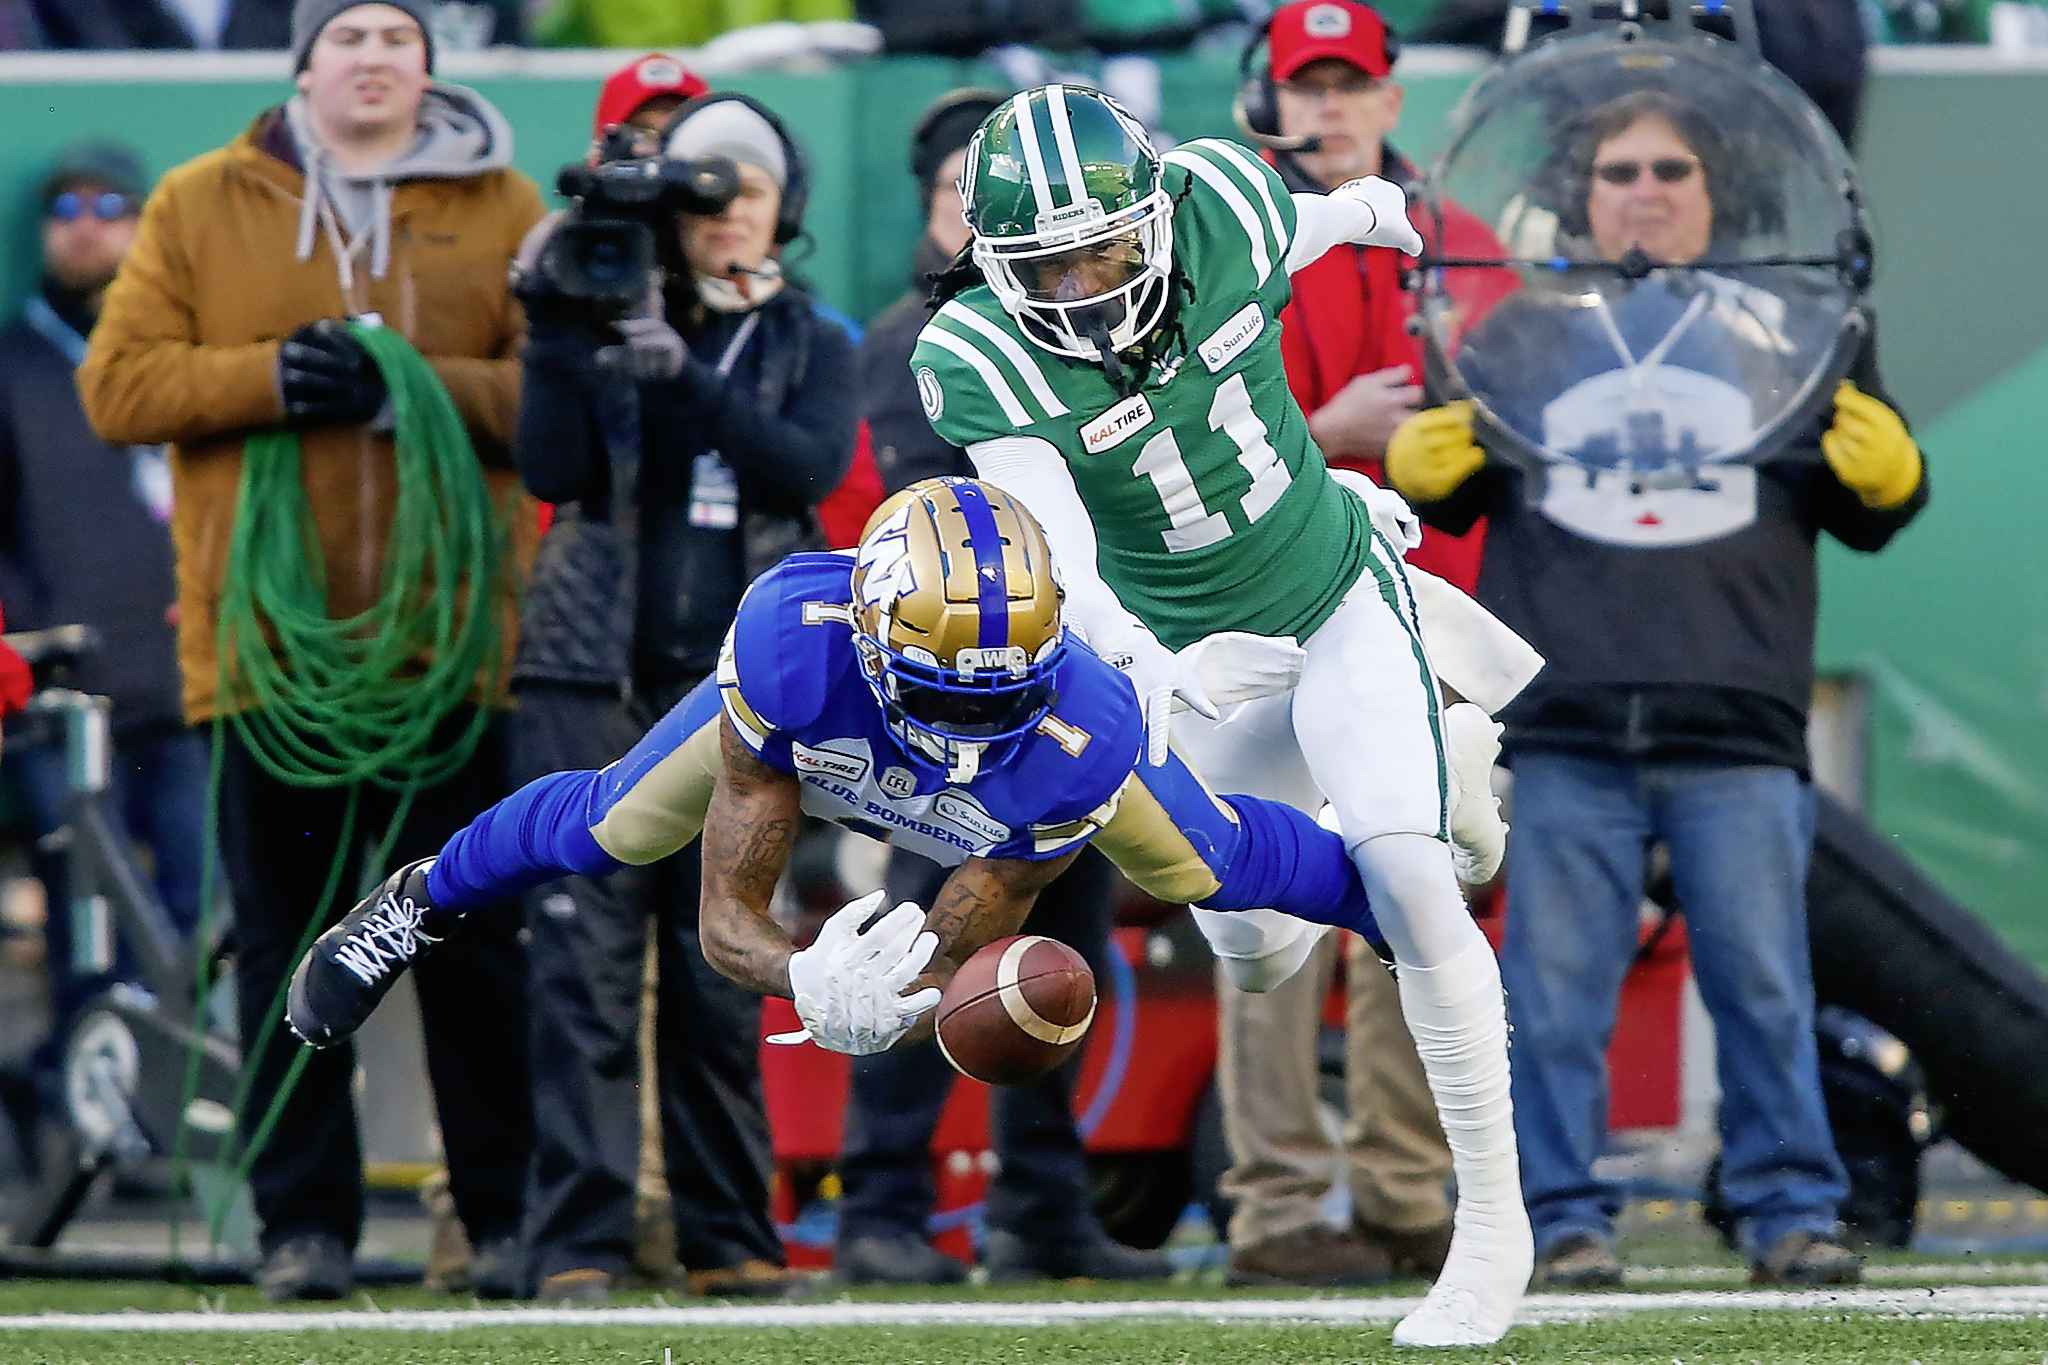 JEFF MCINTOSH / THE CANADIAN PRESS</p><p>Winnipeg Blue Bombers wide receiver Darvin Adams (1) attempts to make a catch under pressure from Saskatchewan Roughriders defensive back Ed Gainey (11) during CFL West Final football action in Regina, Sunday, Nov. 17, 2019.</p>